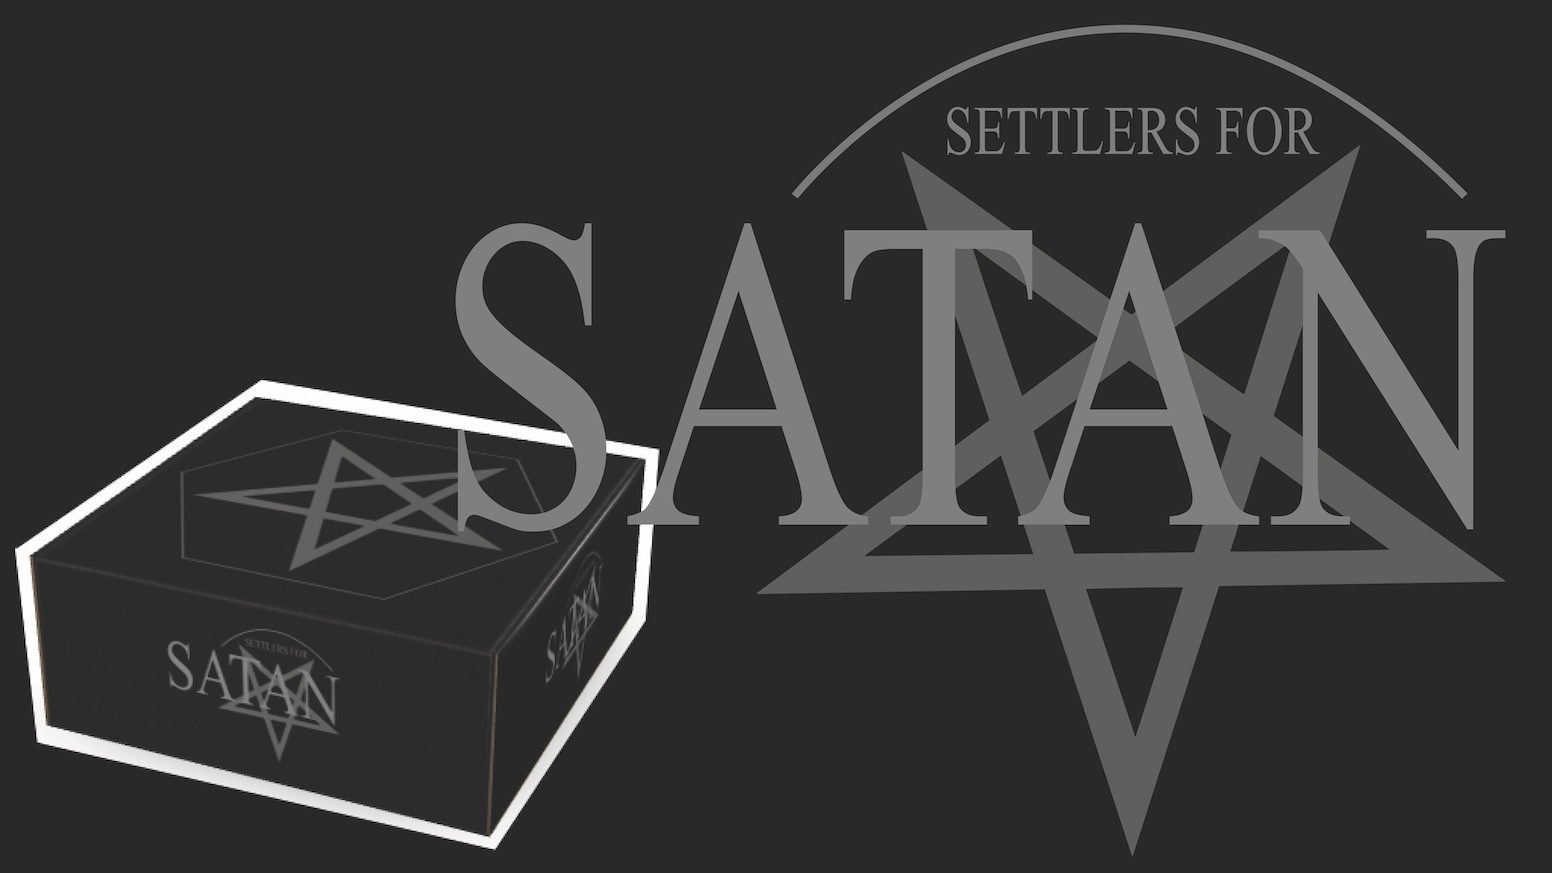 Settle satanic churches and cathedrals for Satan with these stone hexes. Limited Collectors Edition.